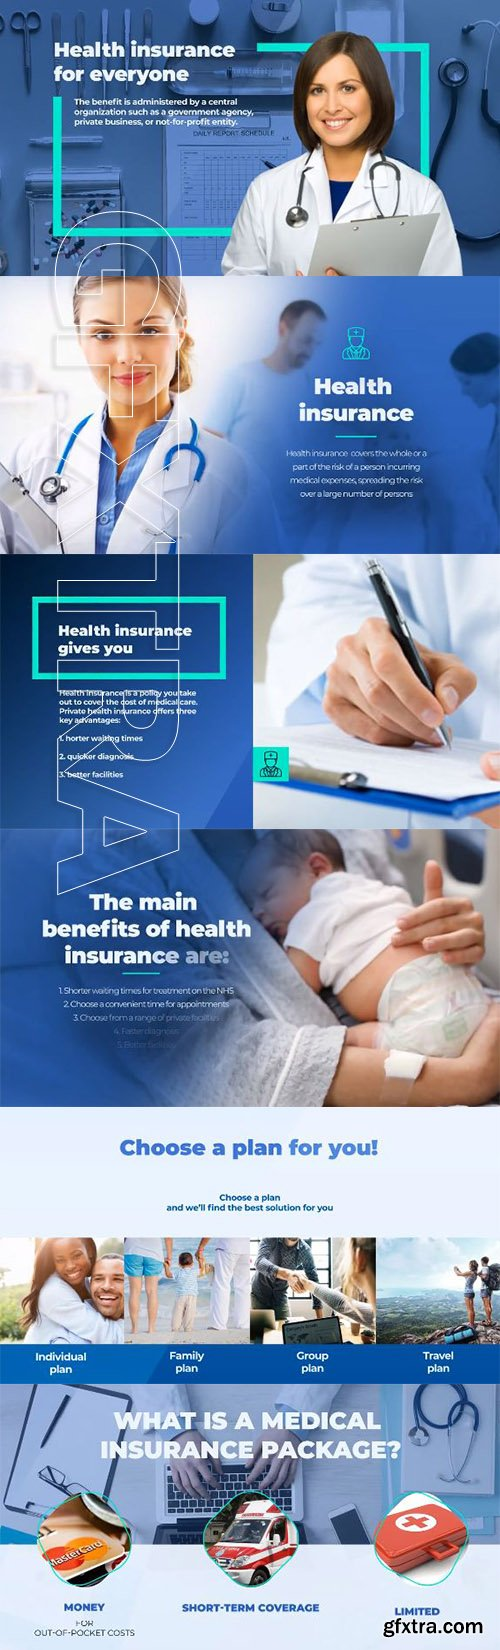 Medical Insurance Agency Promo - After Effects 99017